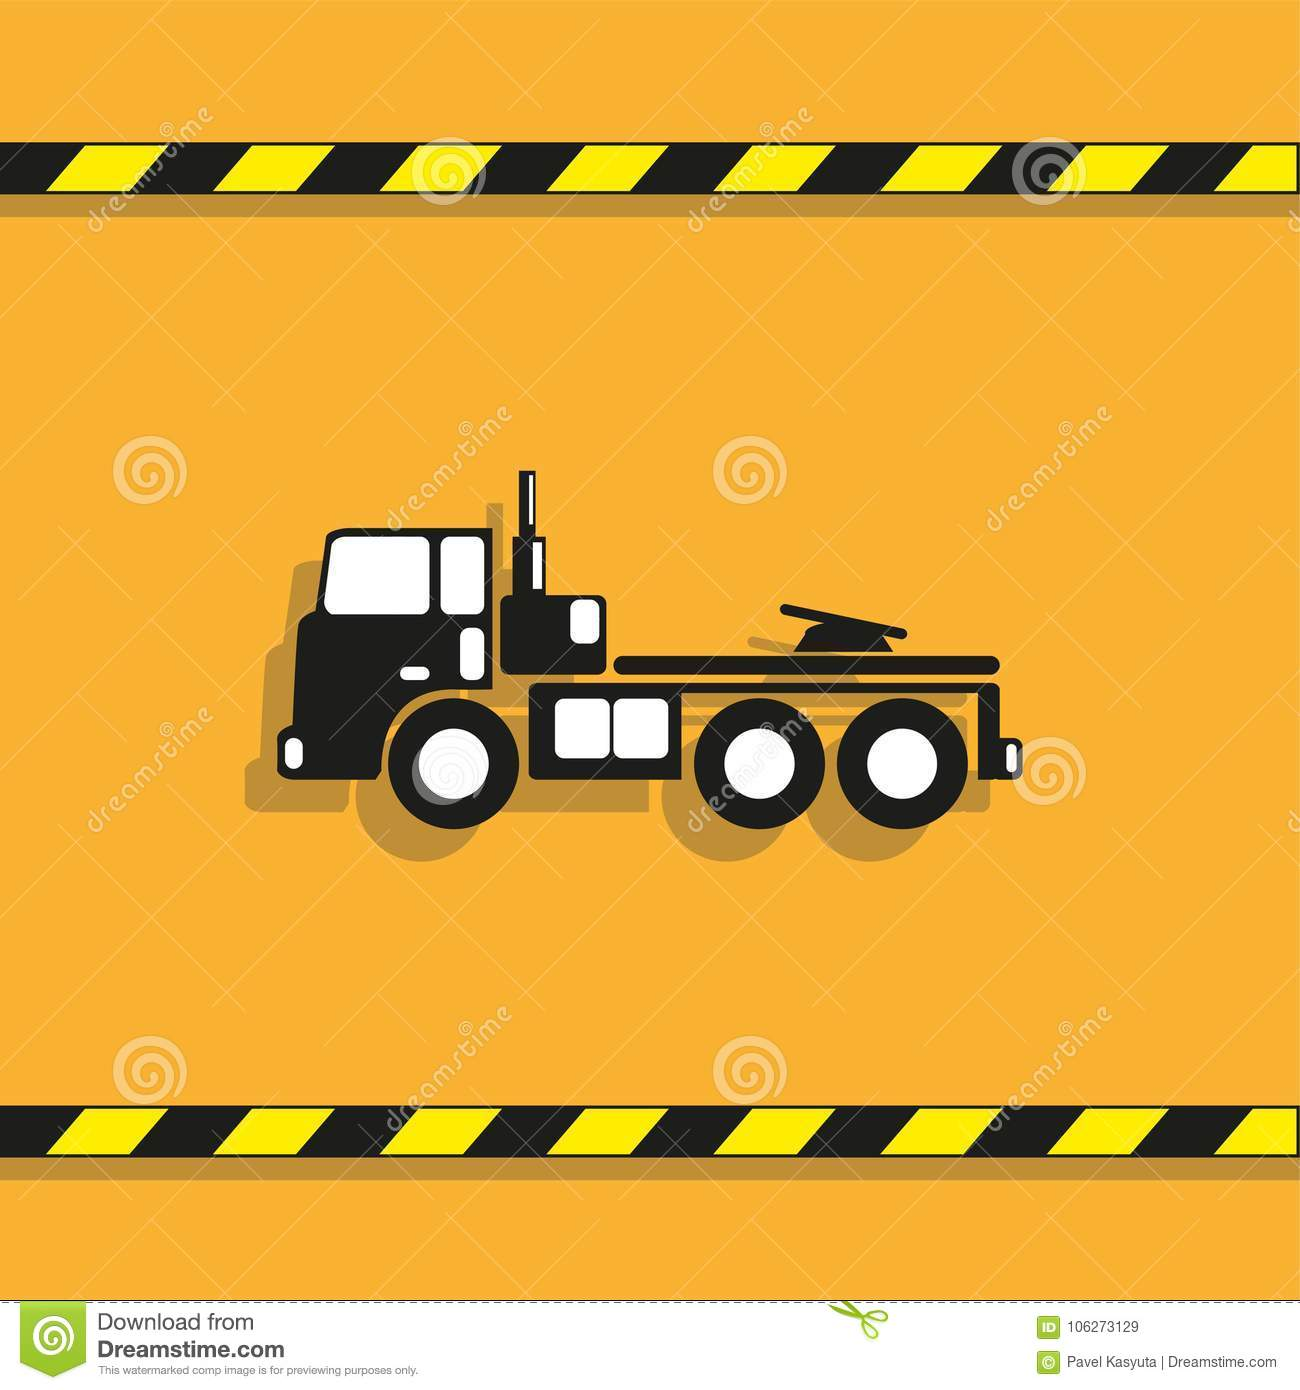 Truck Vector Icon Conditional Vector Image On A Light